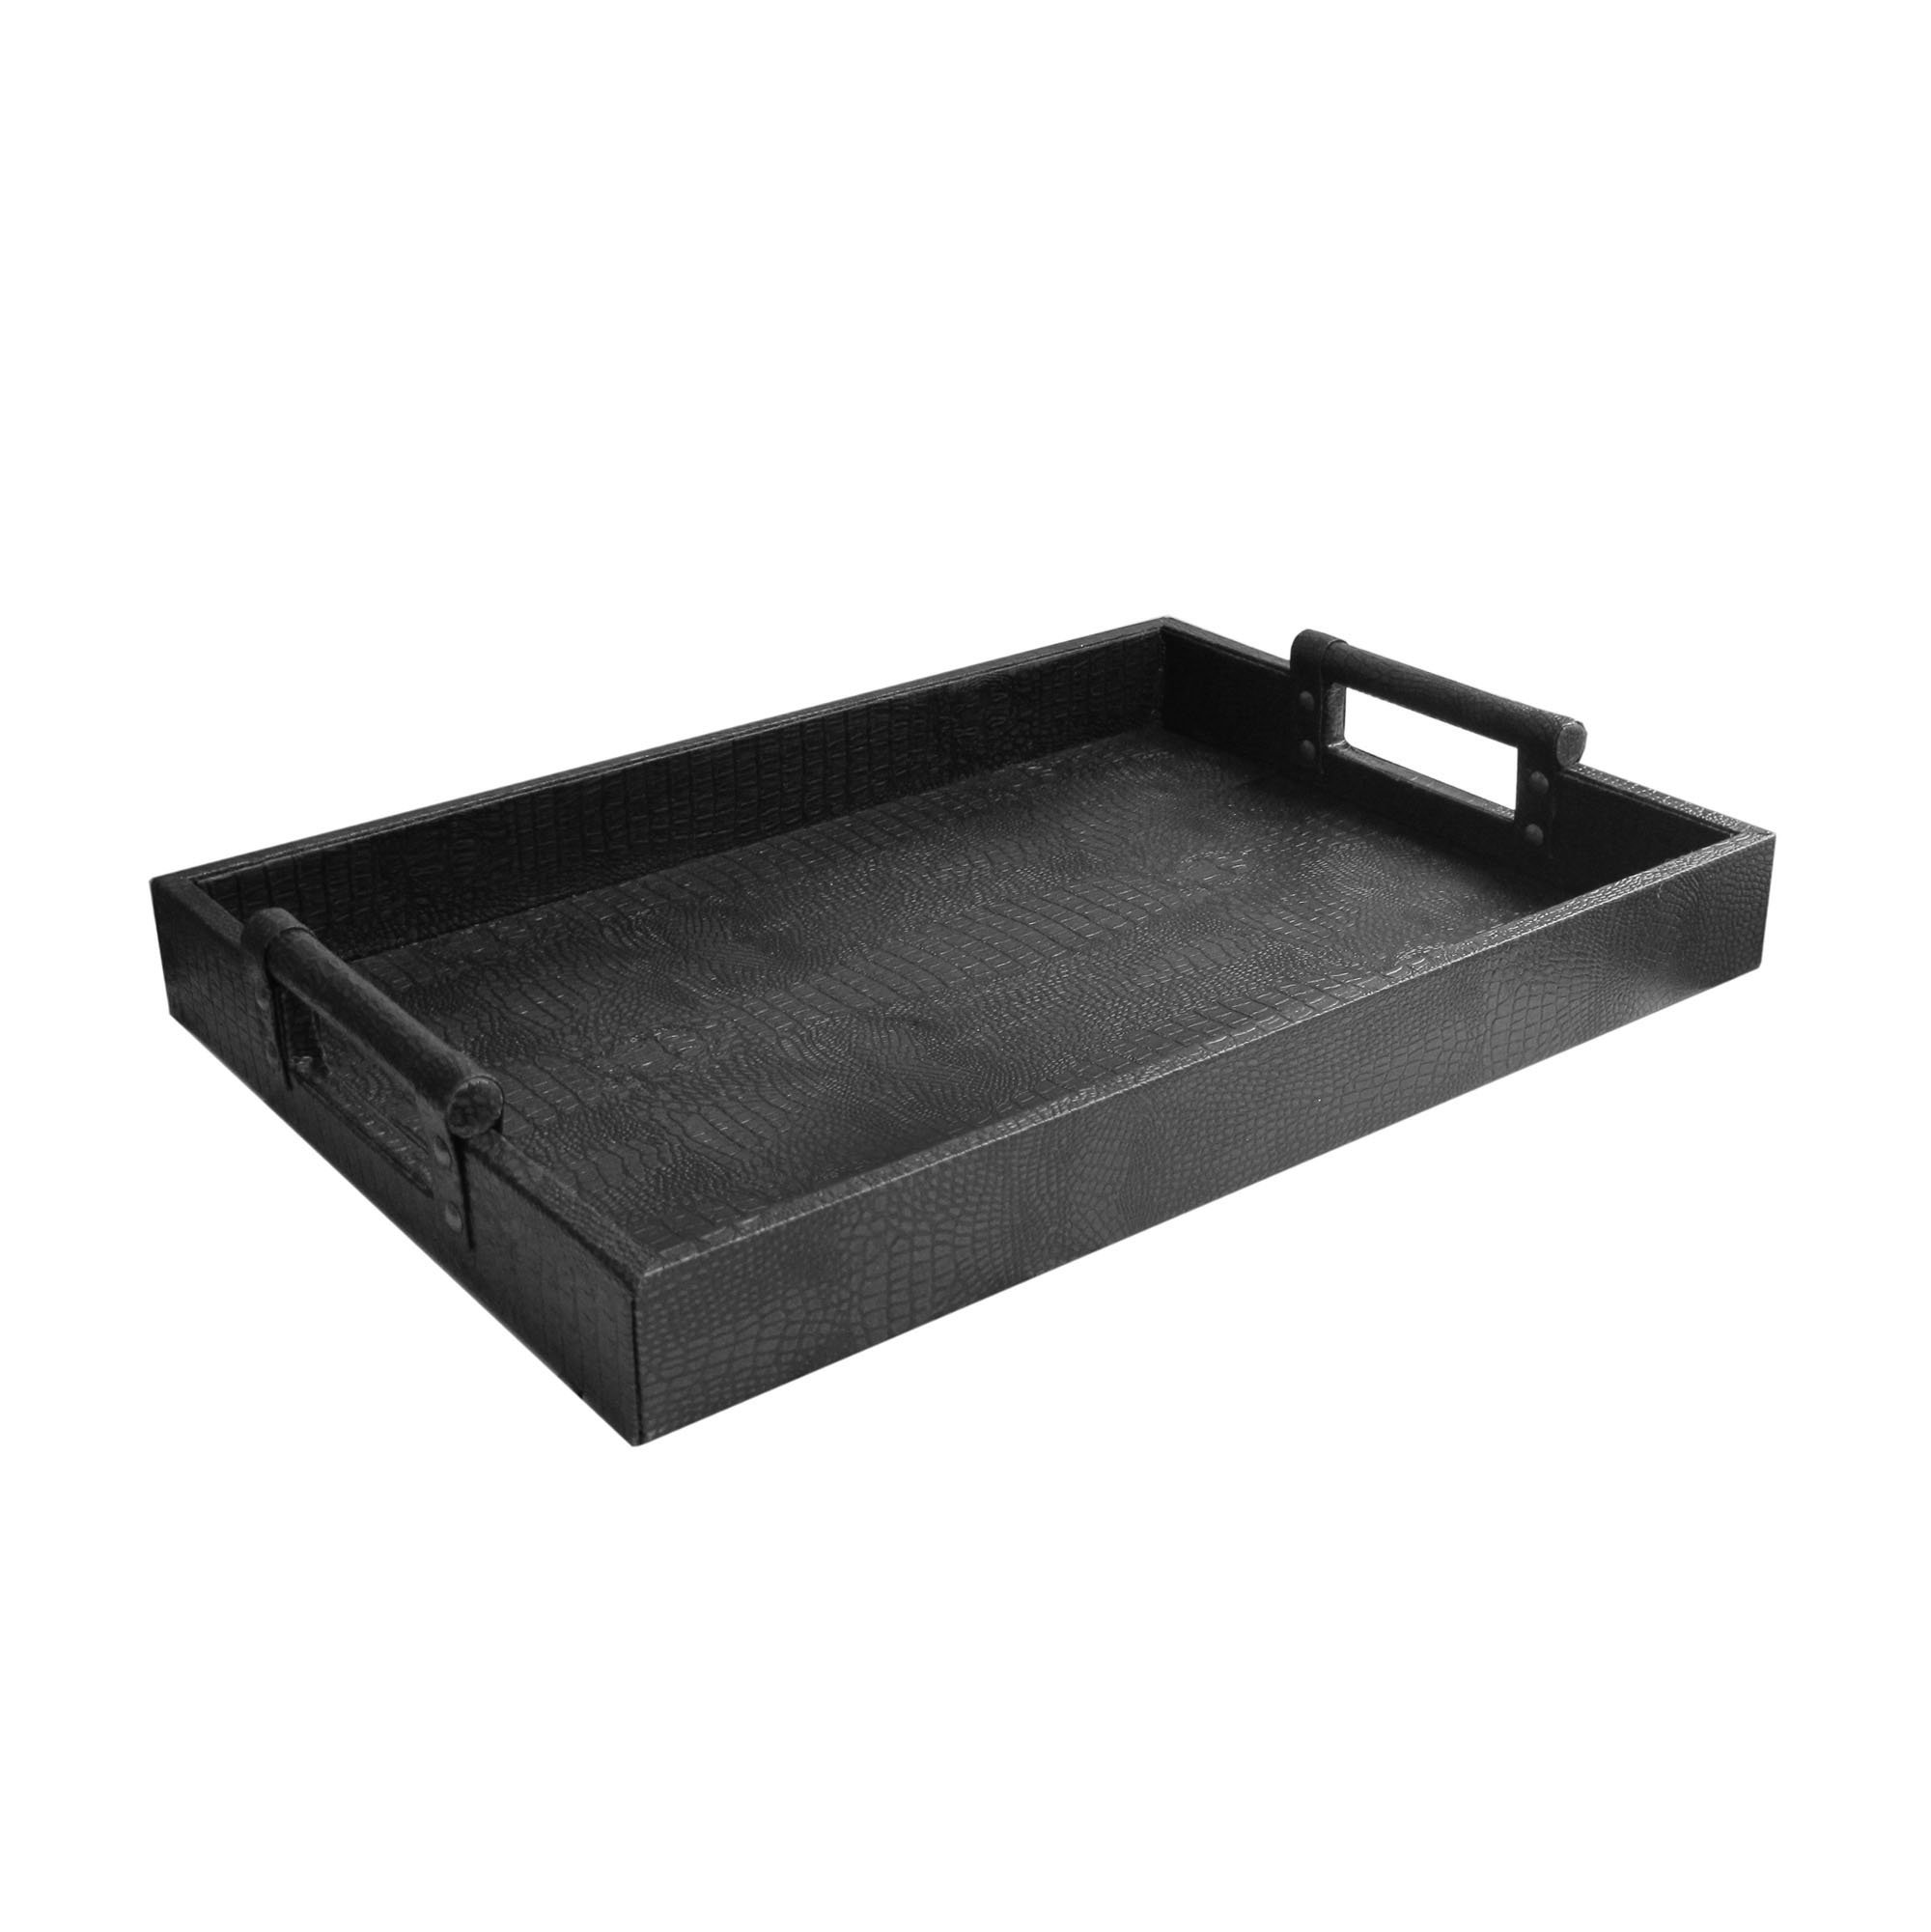 American Atelier 1183910 Leather Rectangle Serving Tray, Black